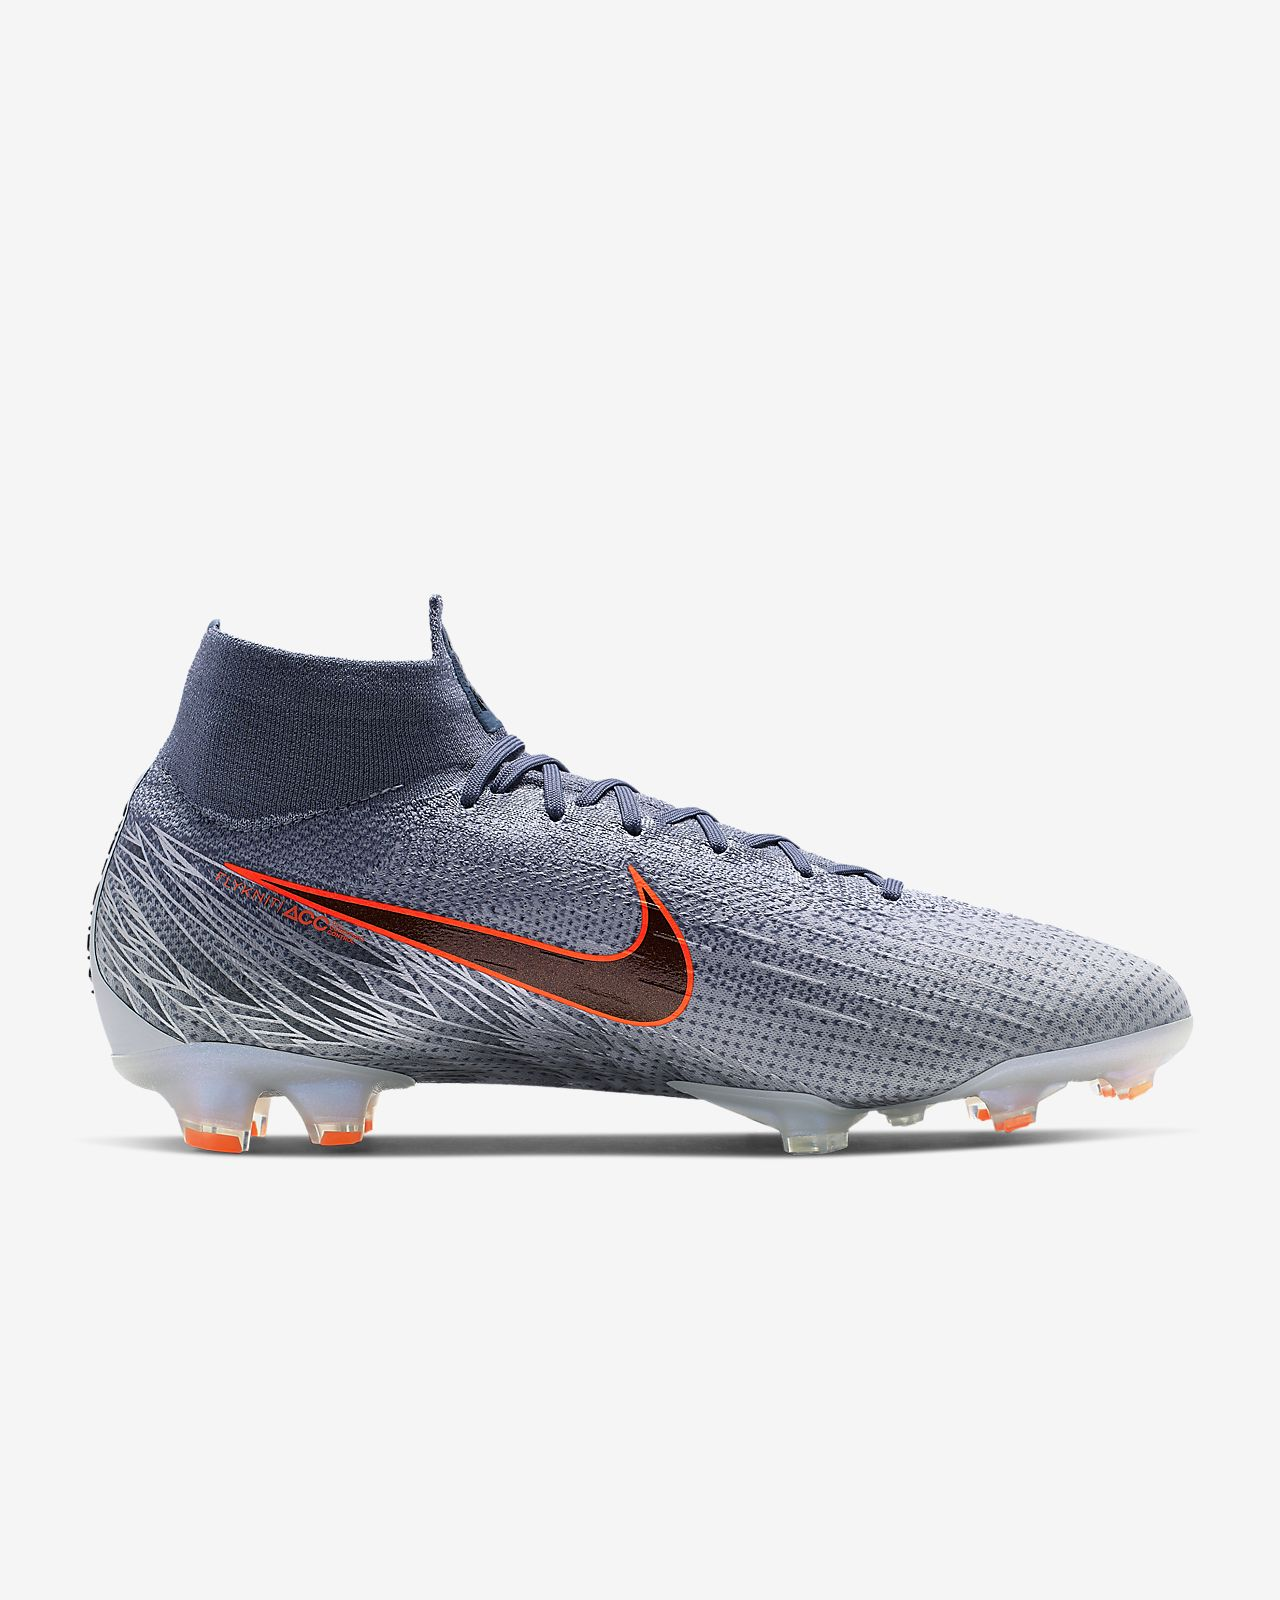 98ba0e2f979 Nike Superfly 6 Elite FG Firm-Ground Soccer Cleat. Nike.com